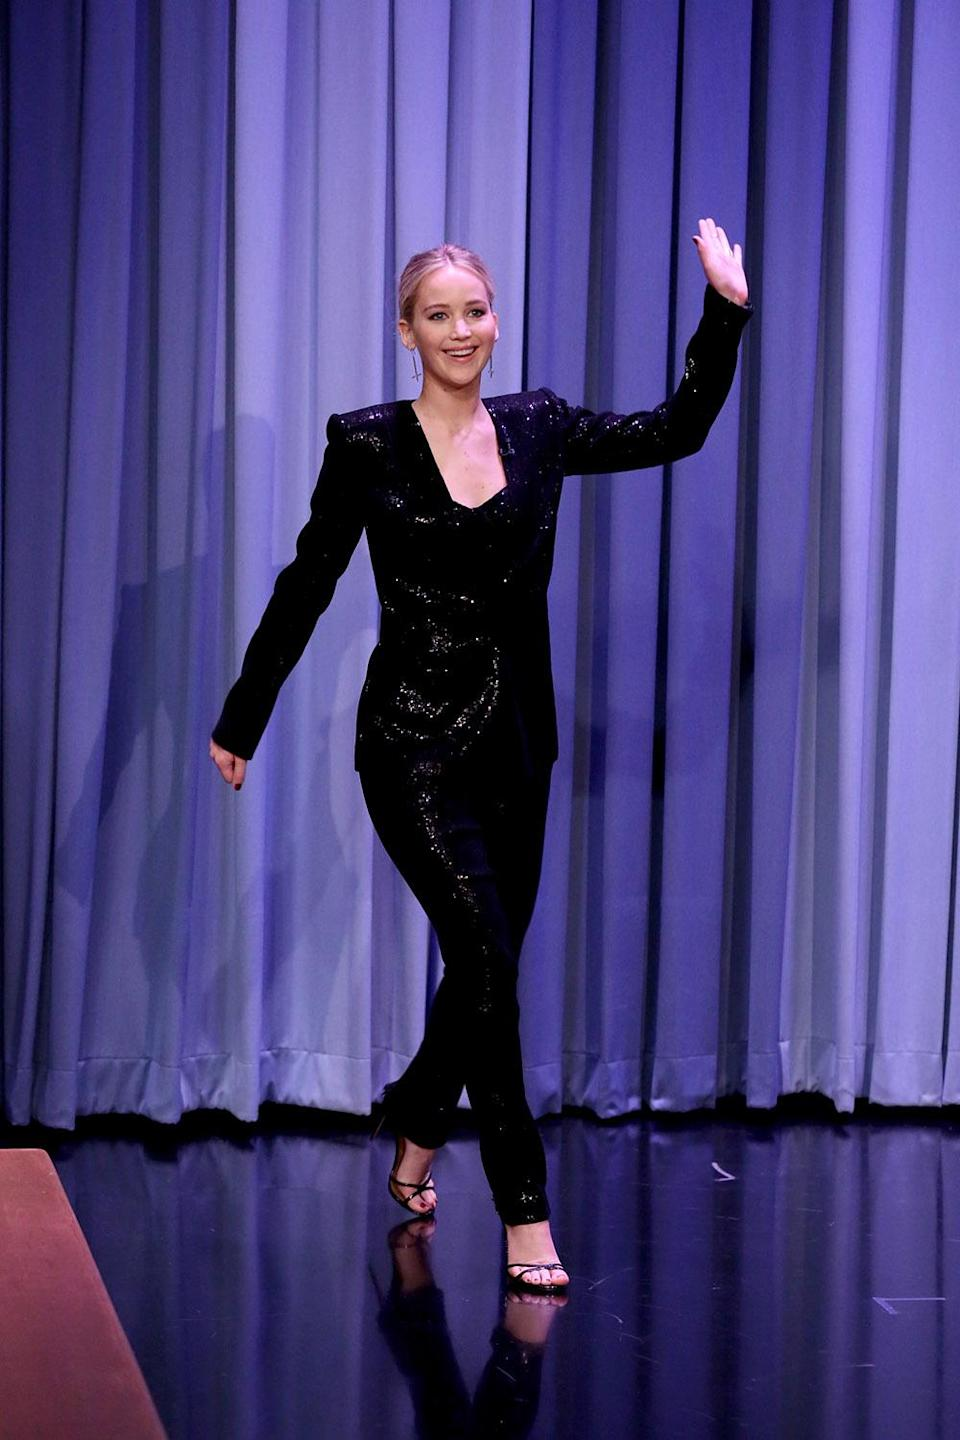 THE TONIGHT SHOW STARRING JIMMY FALLON — Episode 0735 — Pictured: Actress Jennifer Lawrence on September 12, 2017 — (Photo by: Andrew Lipovsky/NBC/NBCU Photo Bank via Getty Images)